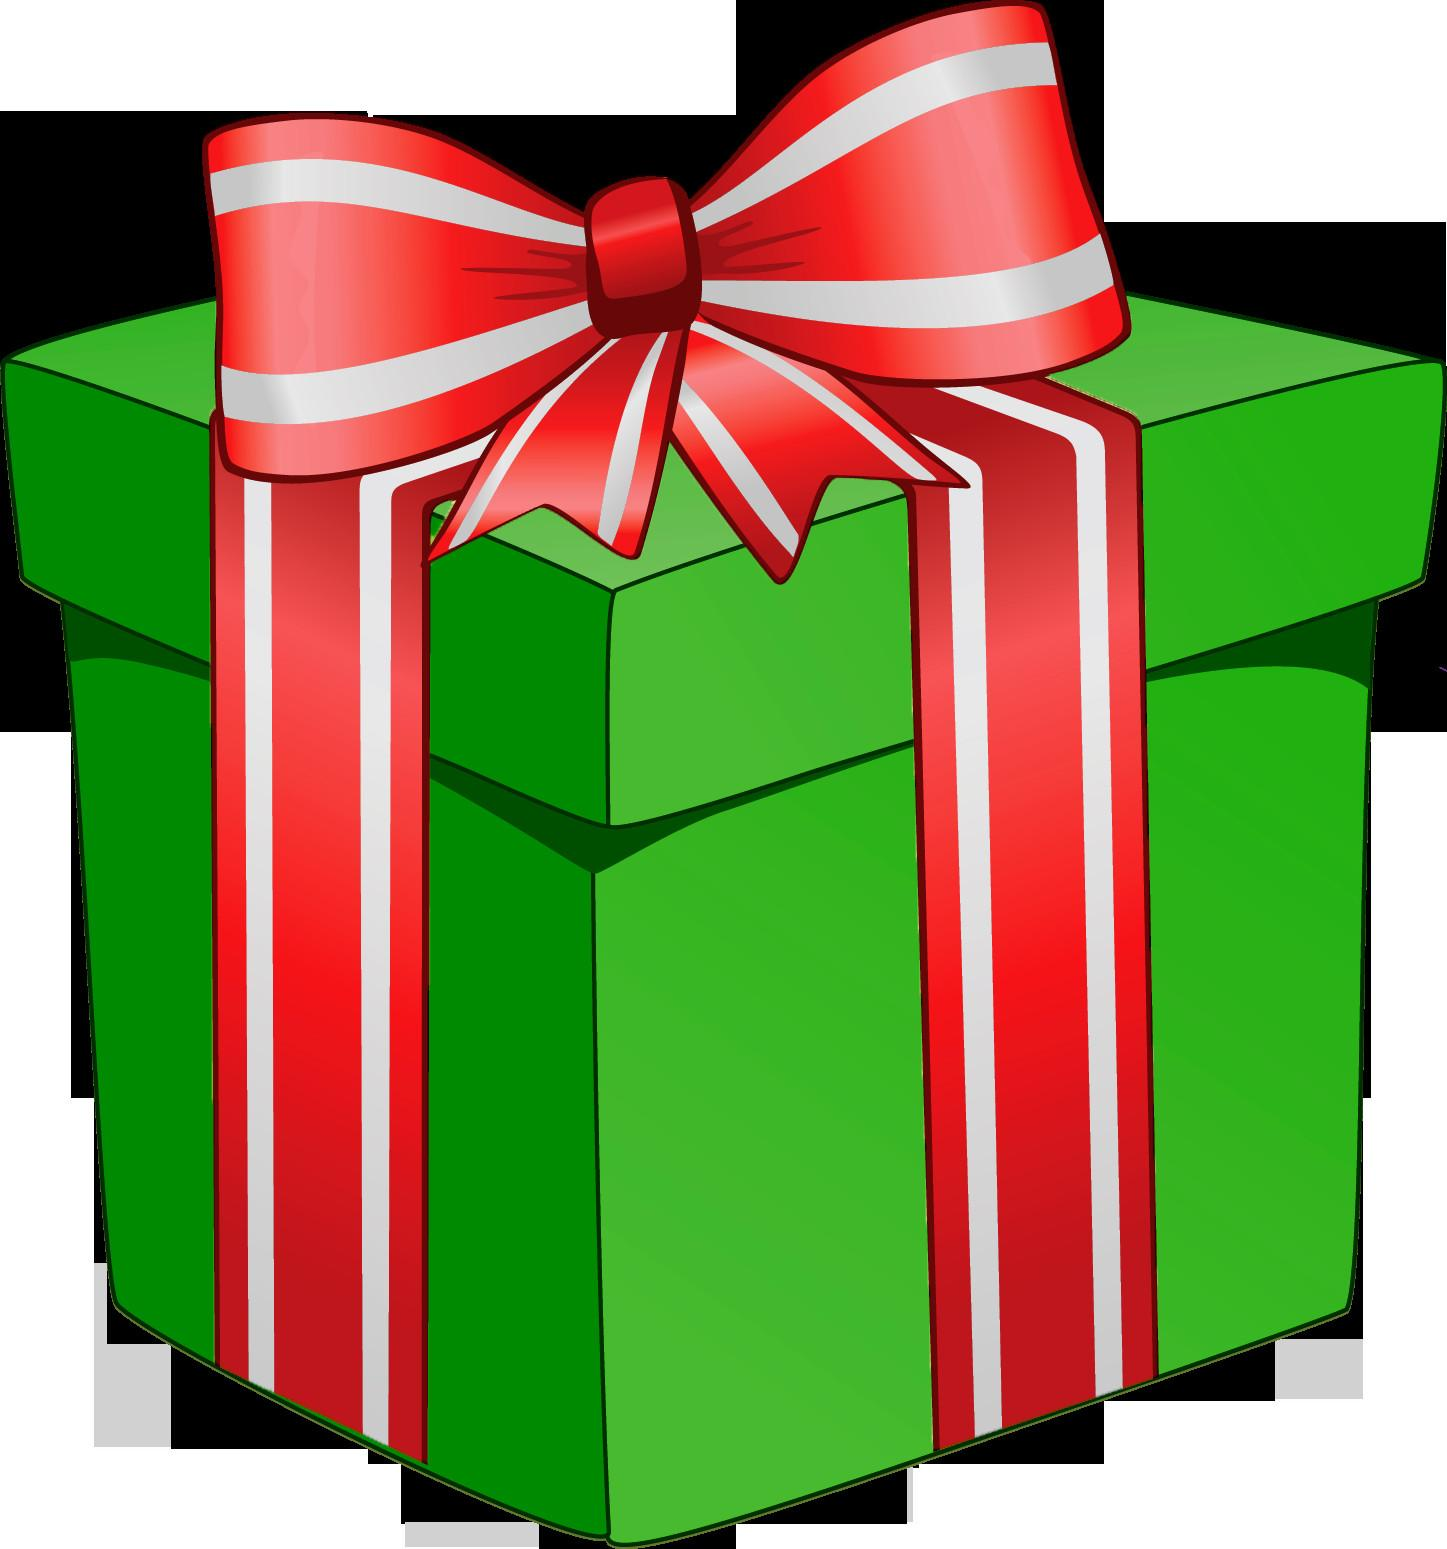 Clip Art Gifts Cliparts